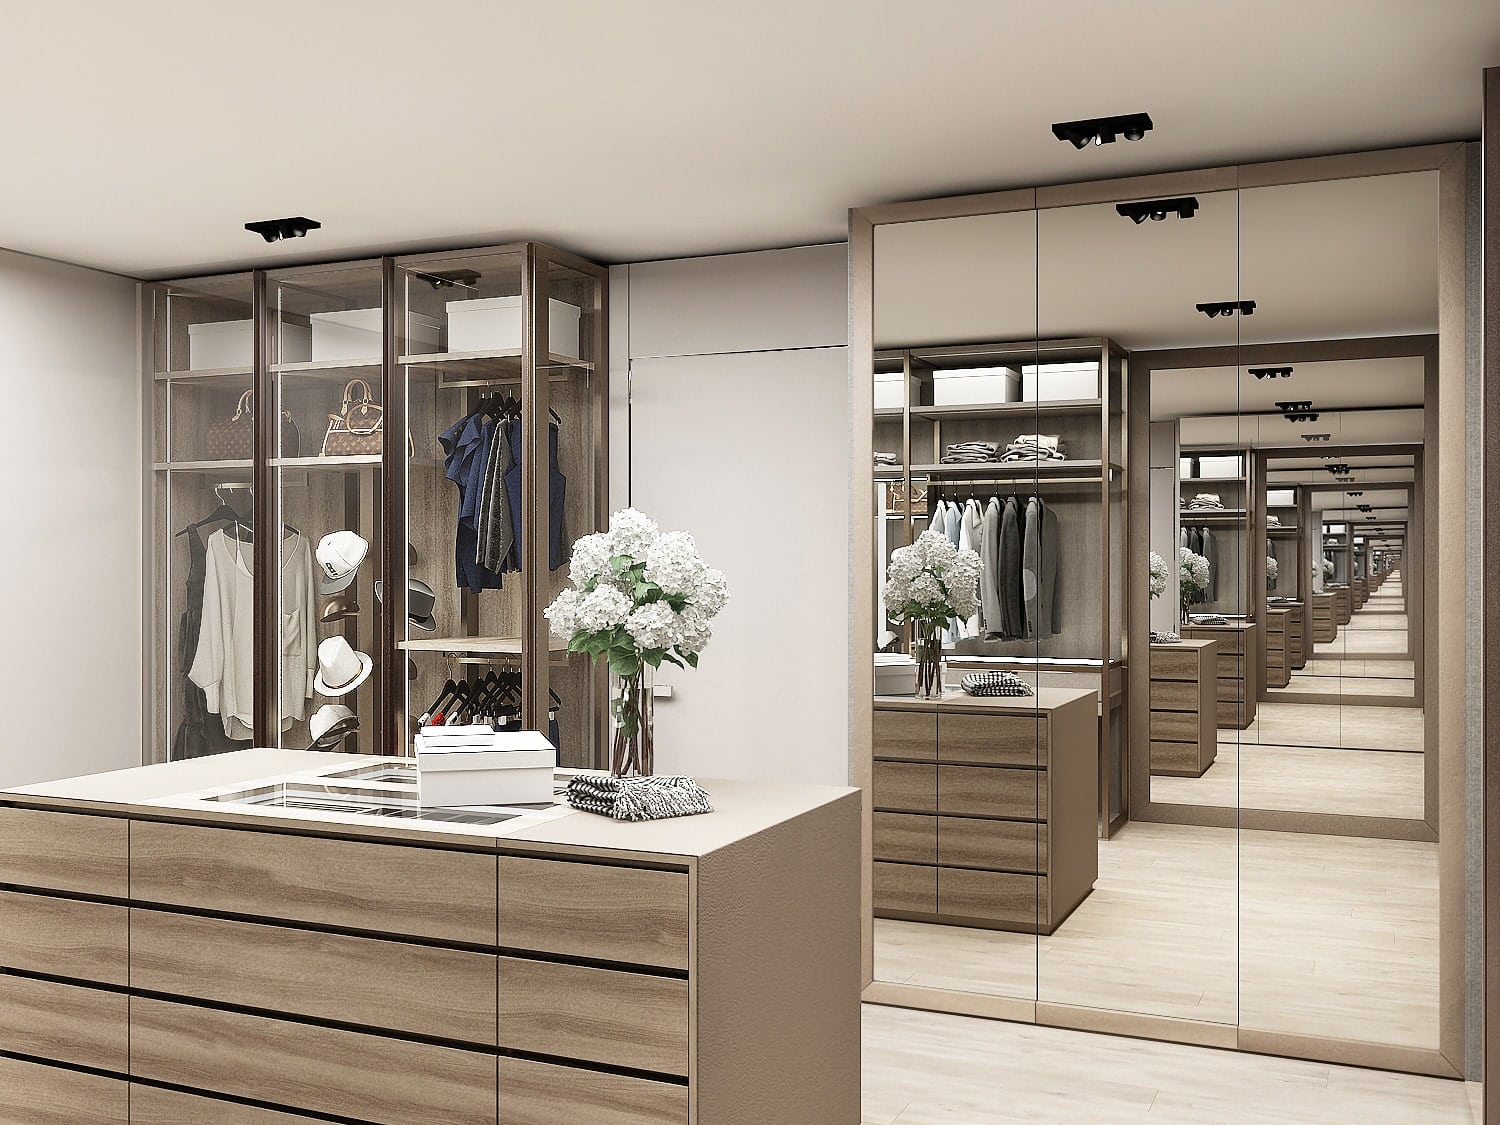 rendering of luxury walk-in schmalenbach wardrobe display under construction in the eggersmann la showroom featuring an island, closed storage with glass front doors, and open storage